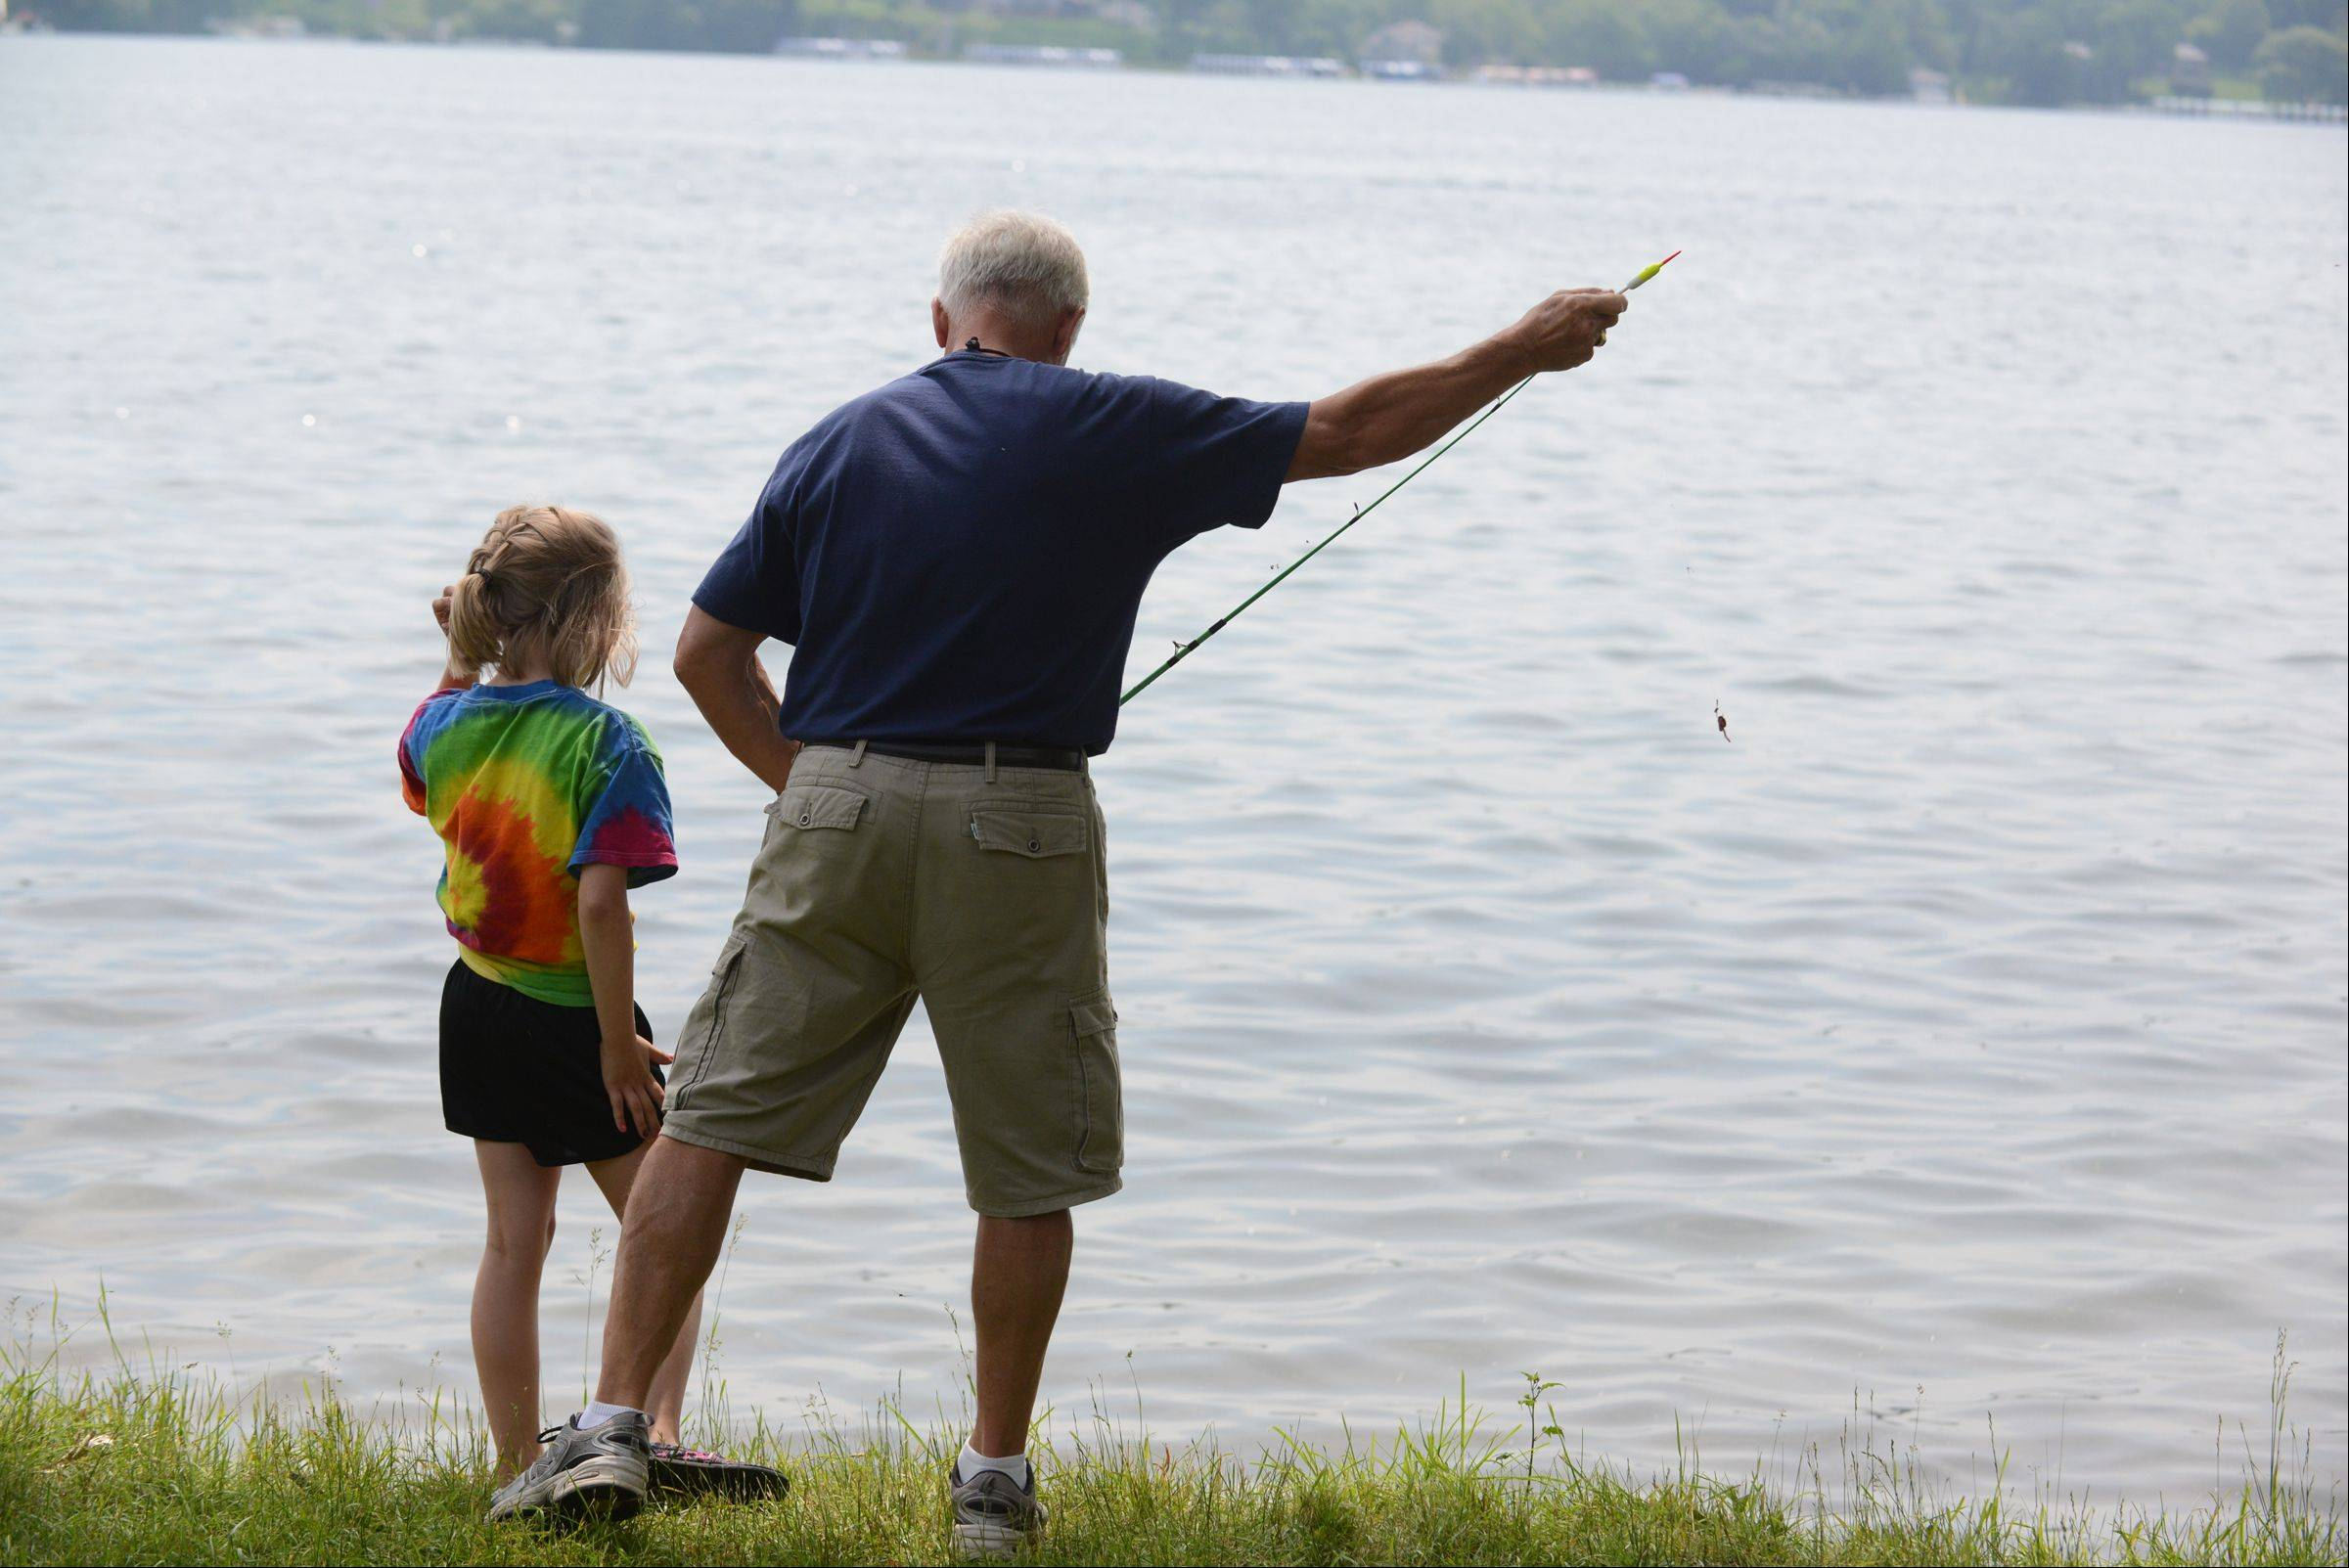 Royal Family Kids Camp counselor Jim Bates helps a camper fish at the Wisconsin camp. Fishing is one of the most popular things the campers do during their week at camp.